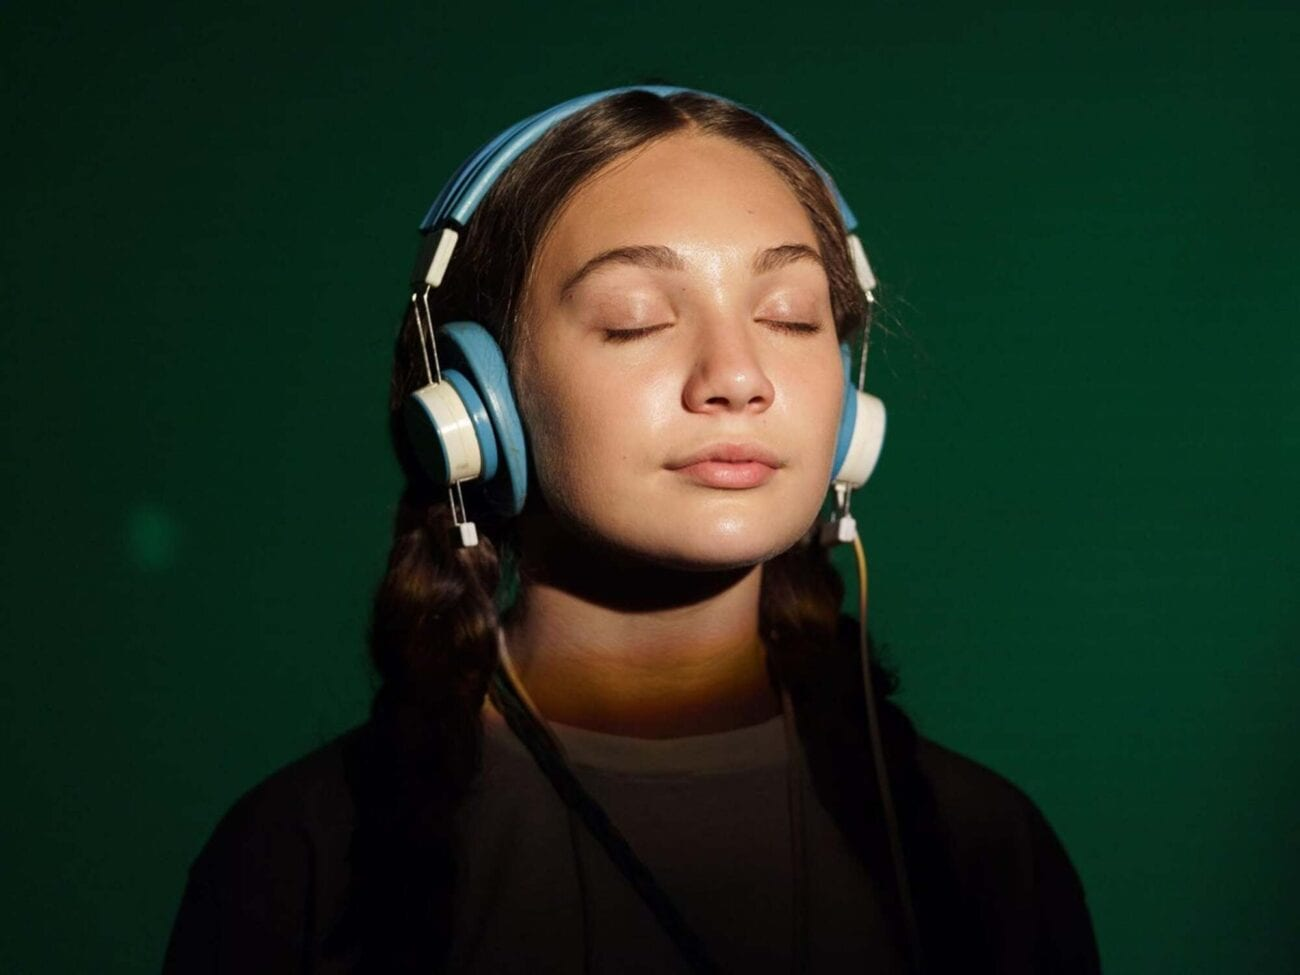 Sia and Maddie Ziegler are in hot water for their controversial film 'Music'. Here's everything the Autistic community had to say about the film.